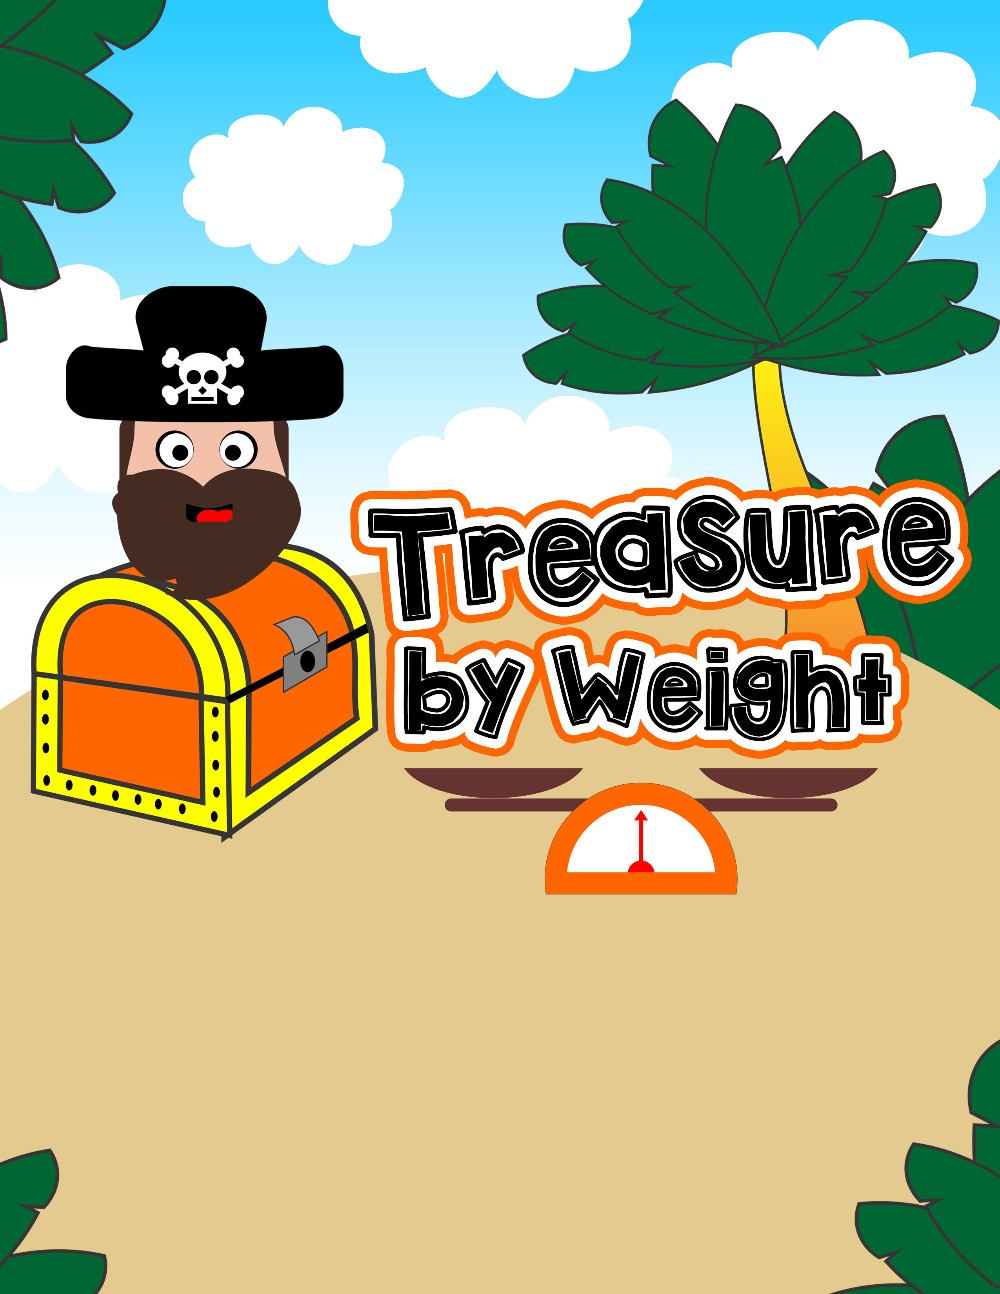 Treasure by Weight